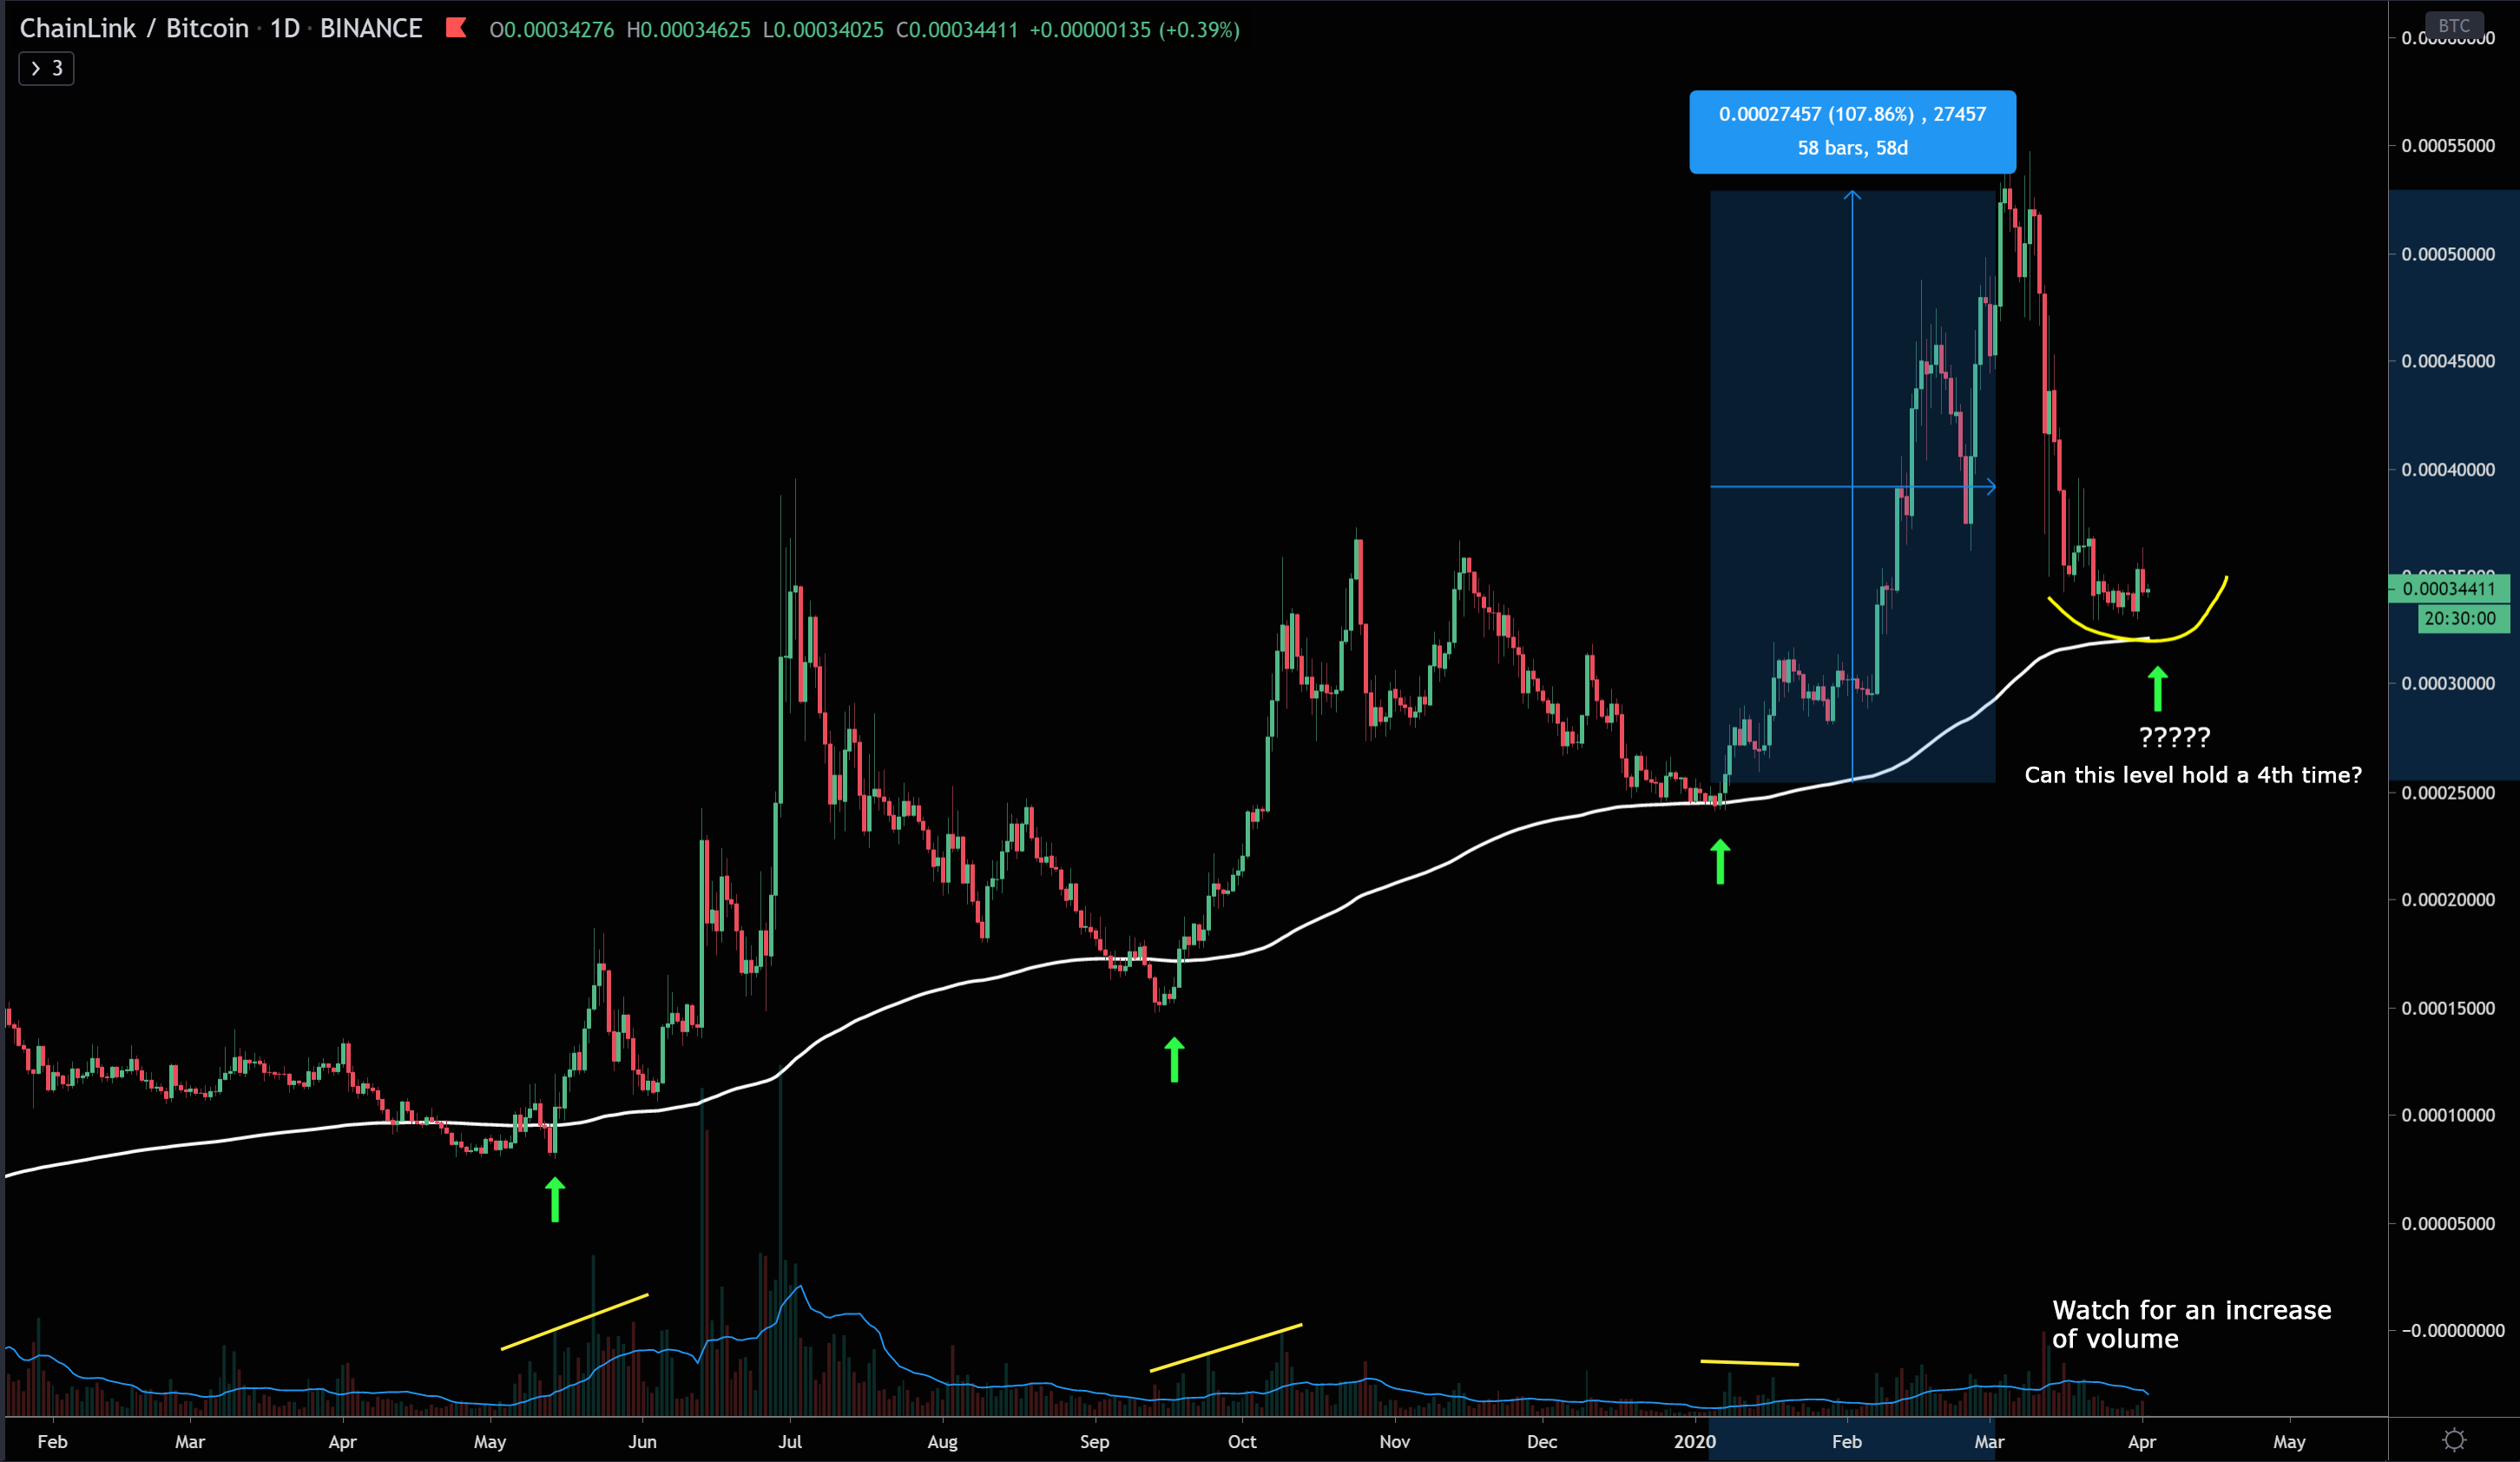 LINK/BTC Approaching Critical Daily Support Level, Will History Repeat Again?